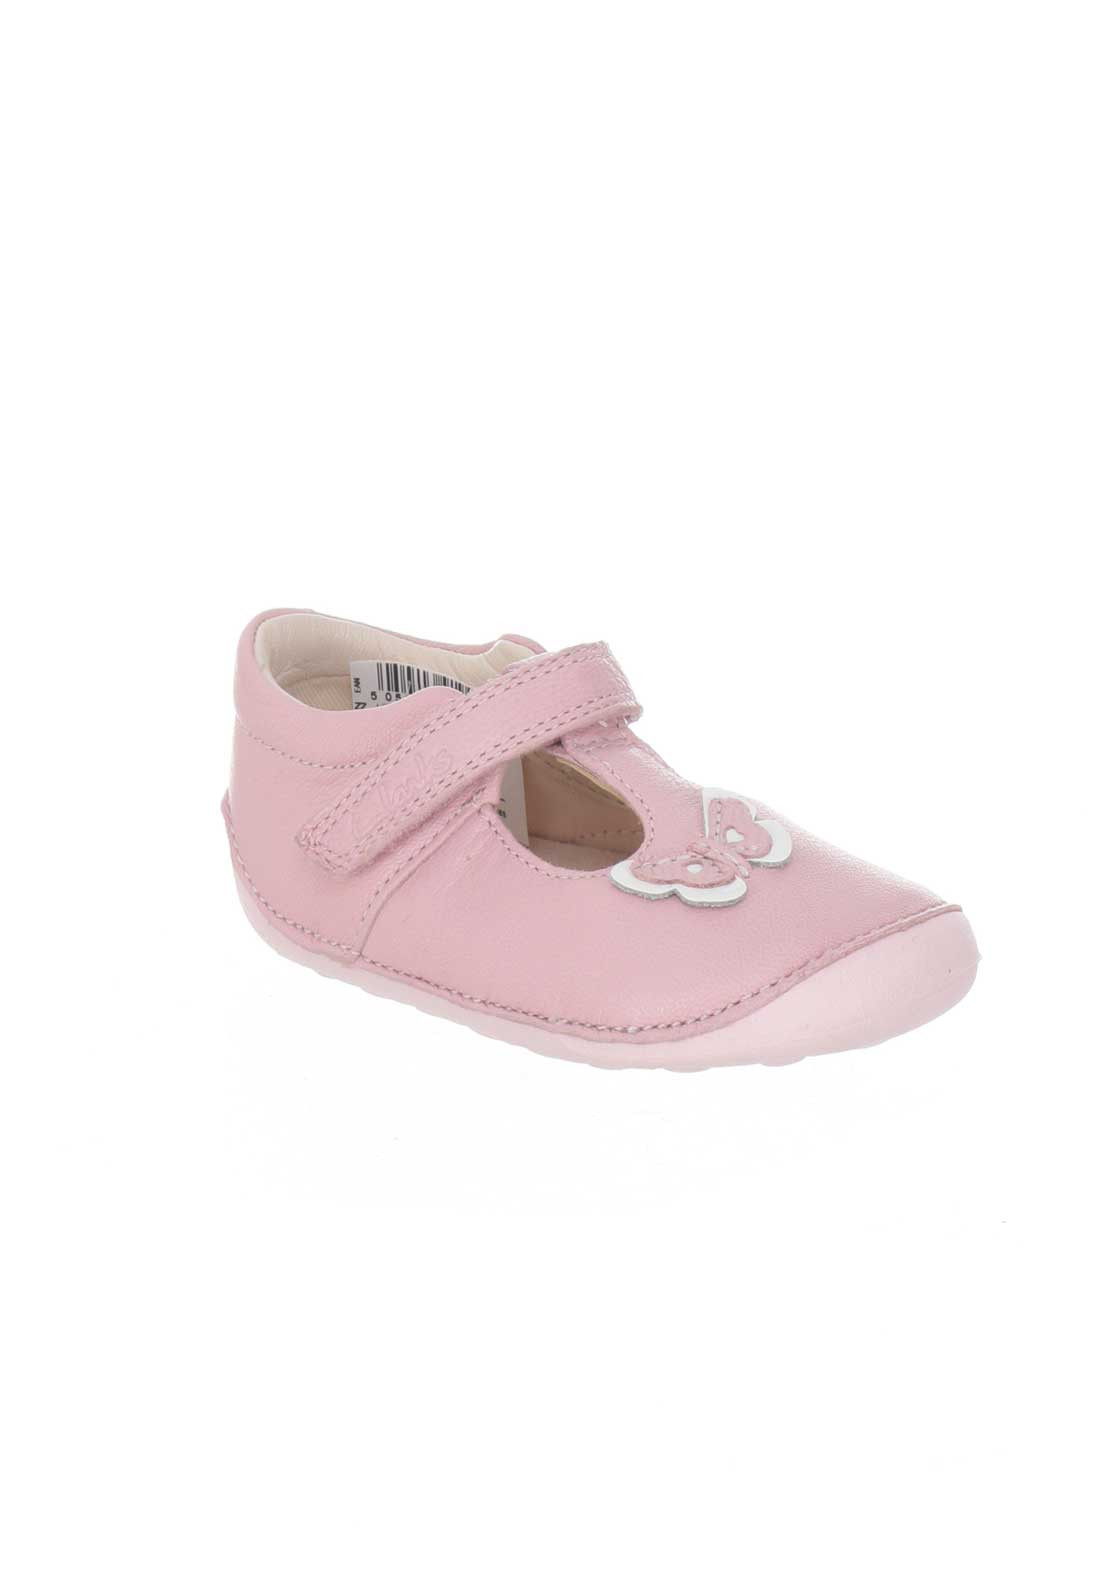 13c45925419ce Clarks Baby Girls Leather Little Wow Pre Shoes